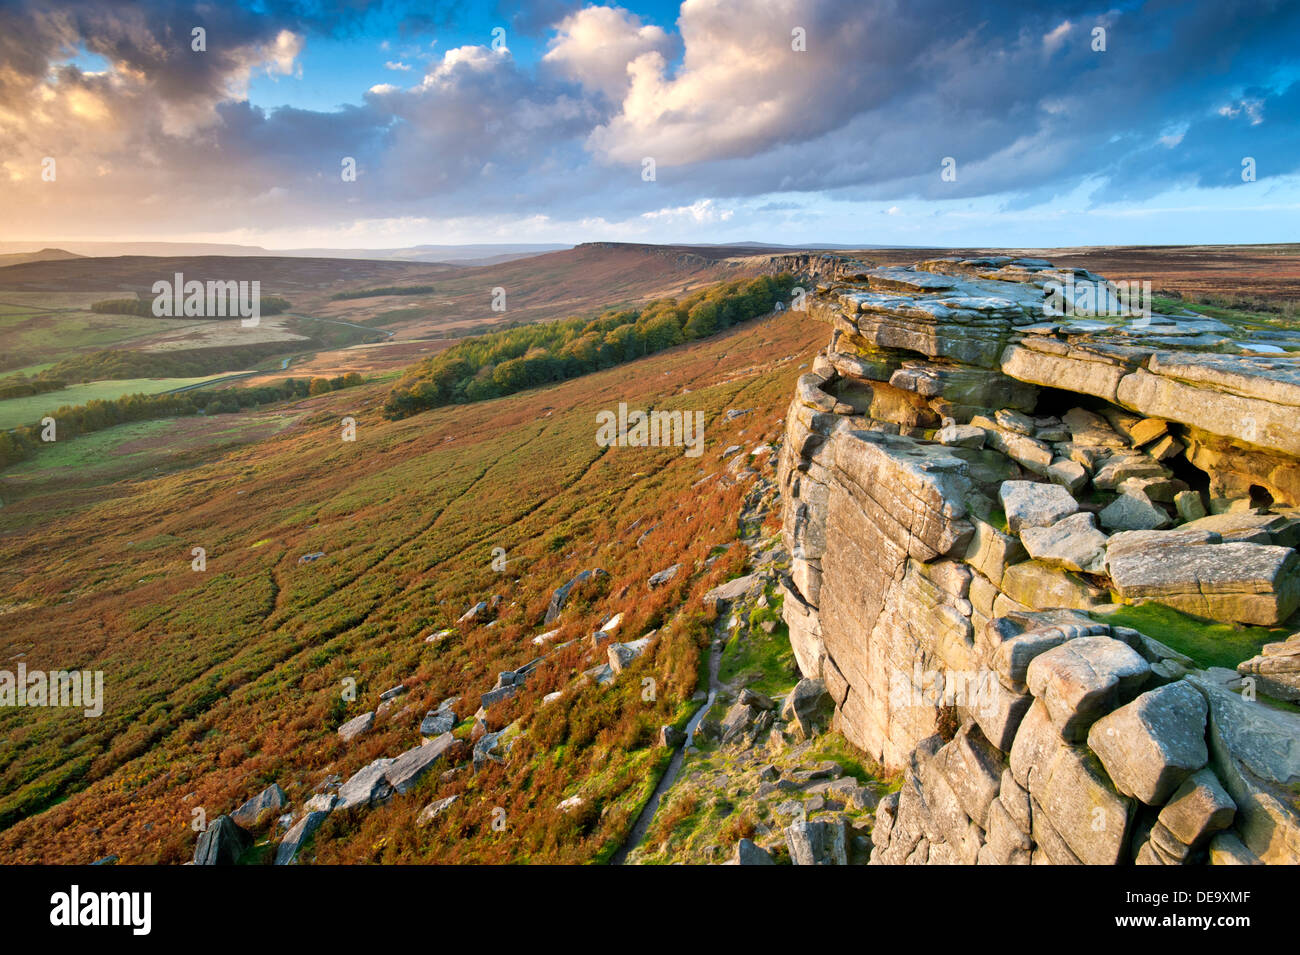 Stanage Edge Looking Towards High Neb, Near Hathersage, Peak District National Park, Derbyshire, England, UK - Stock Image